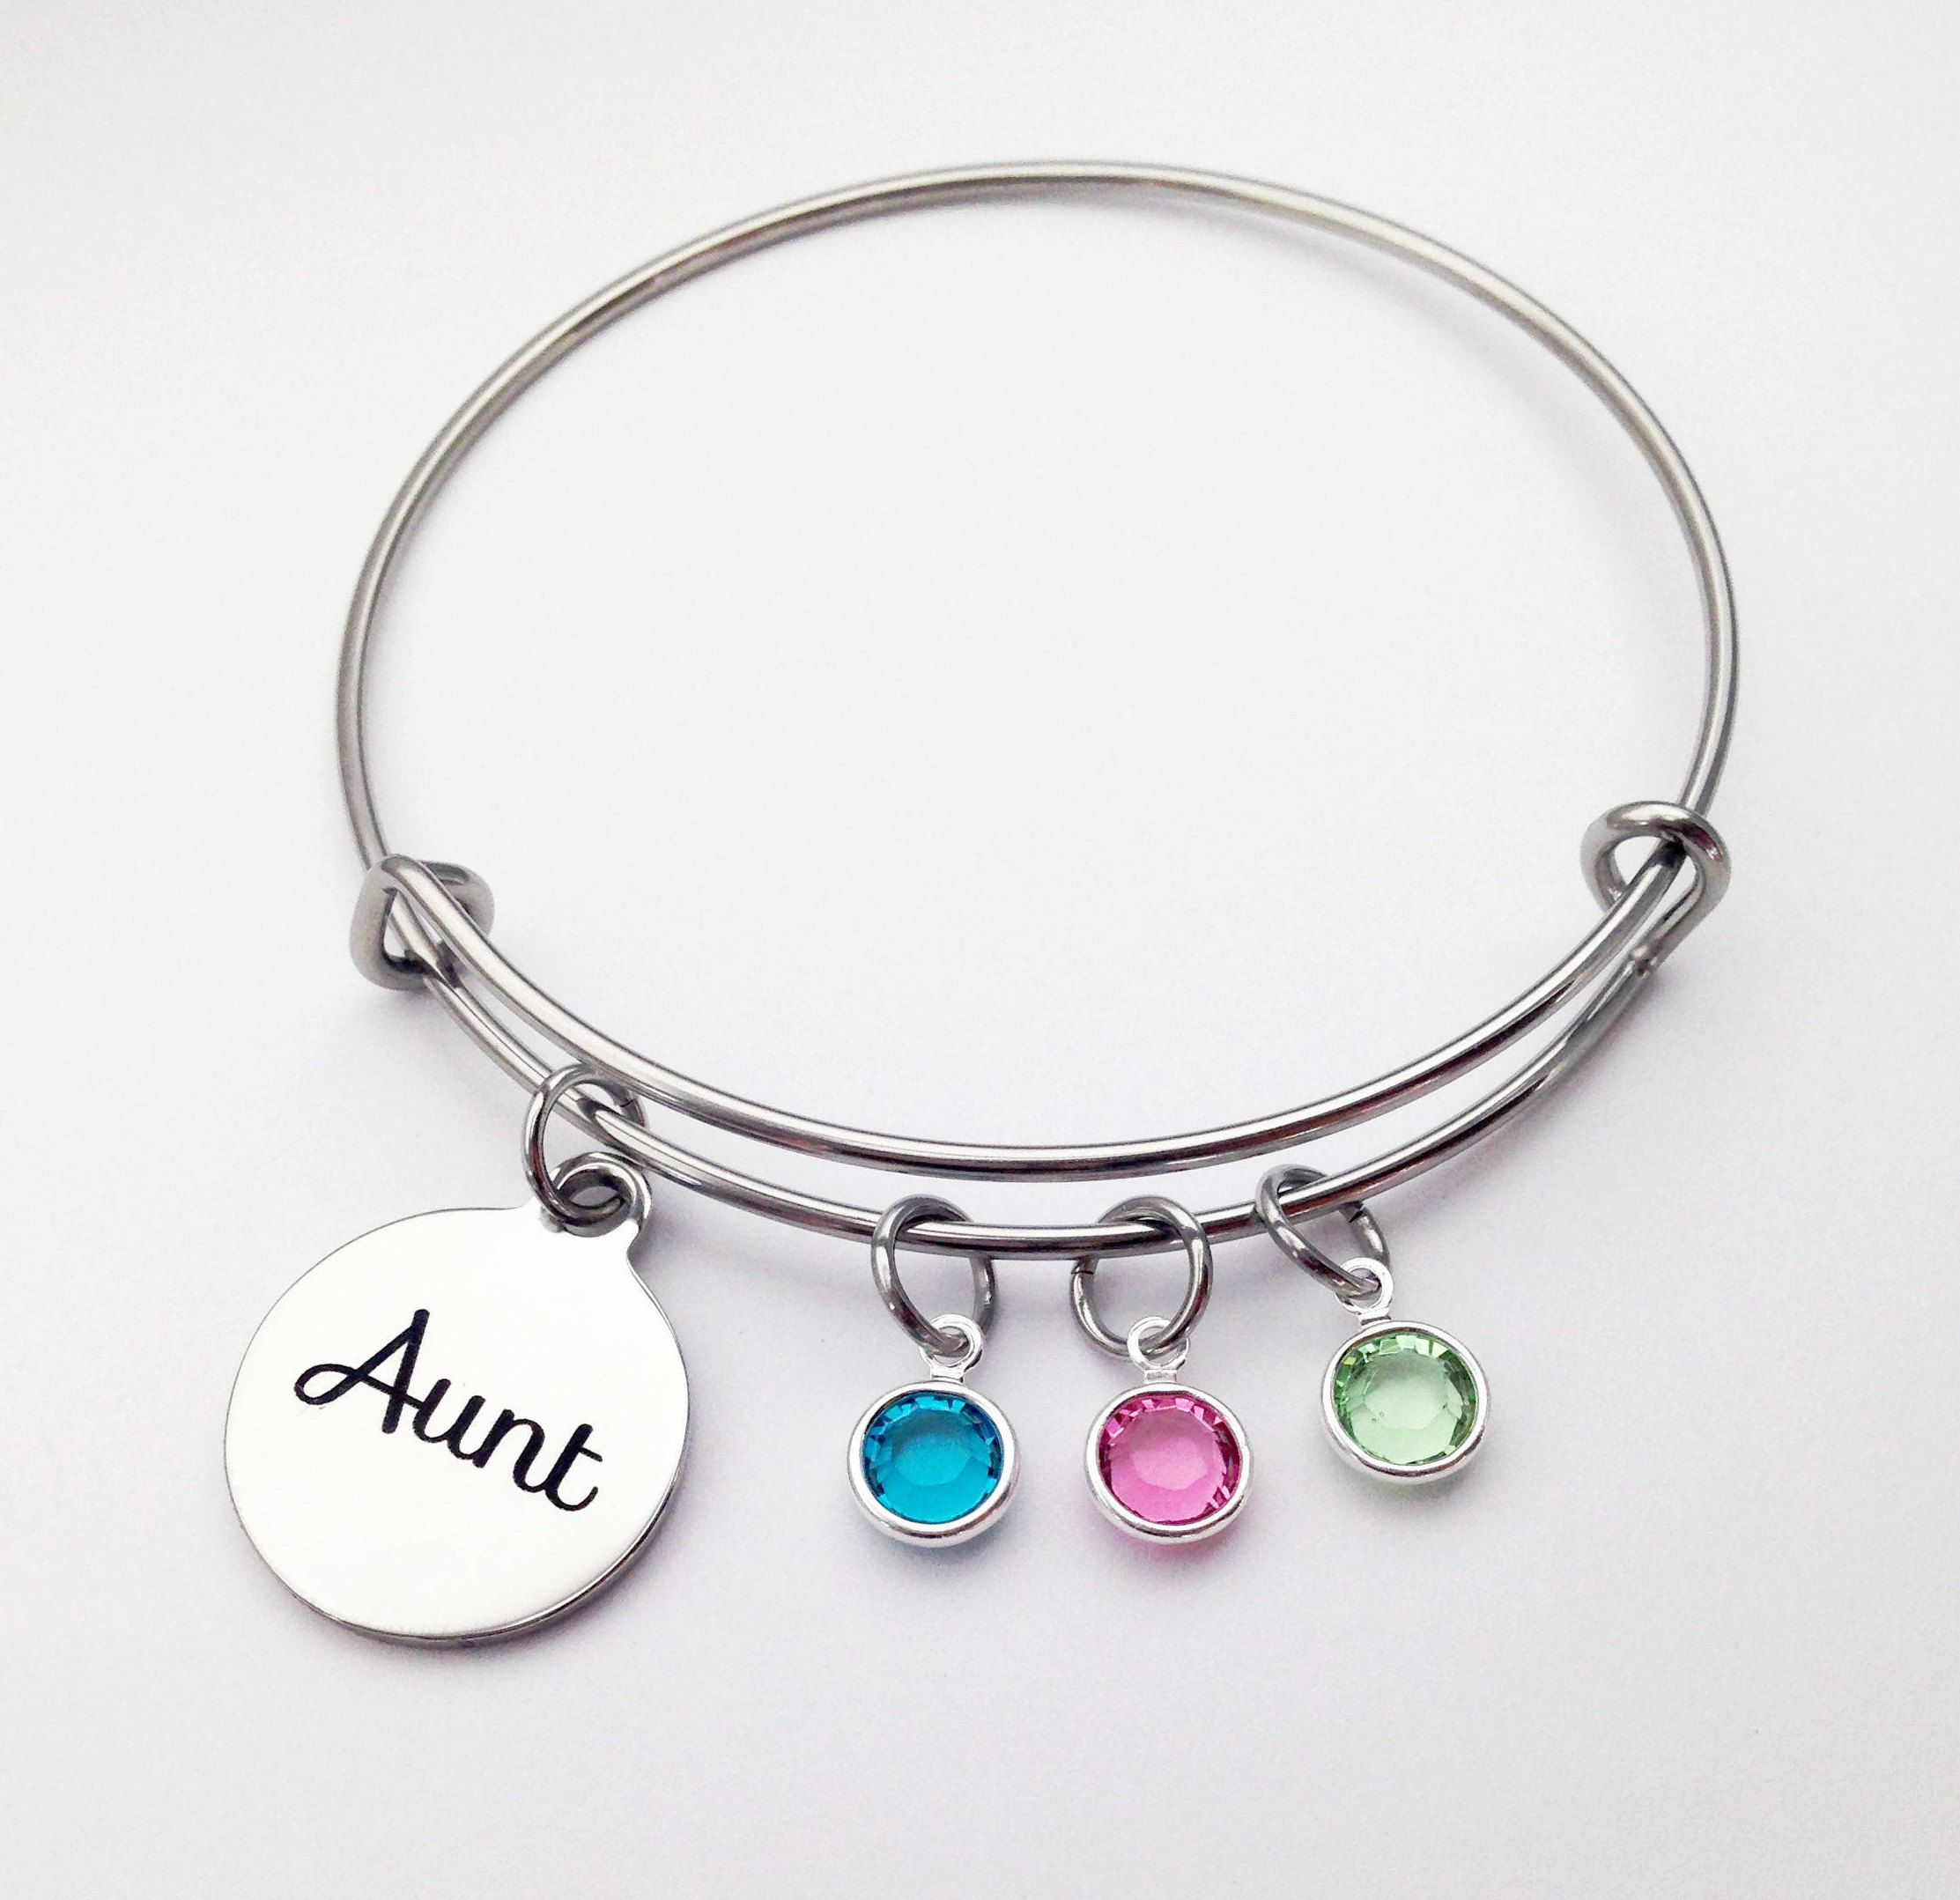 Aunt Bracelet Gift Gifts From Niece Christmas For